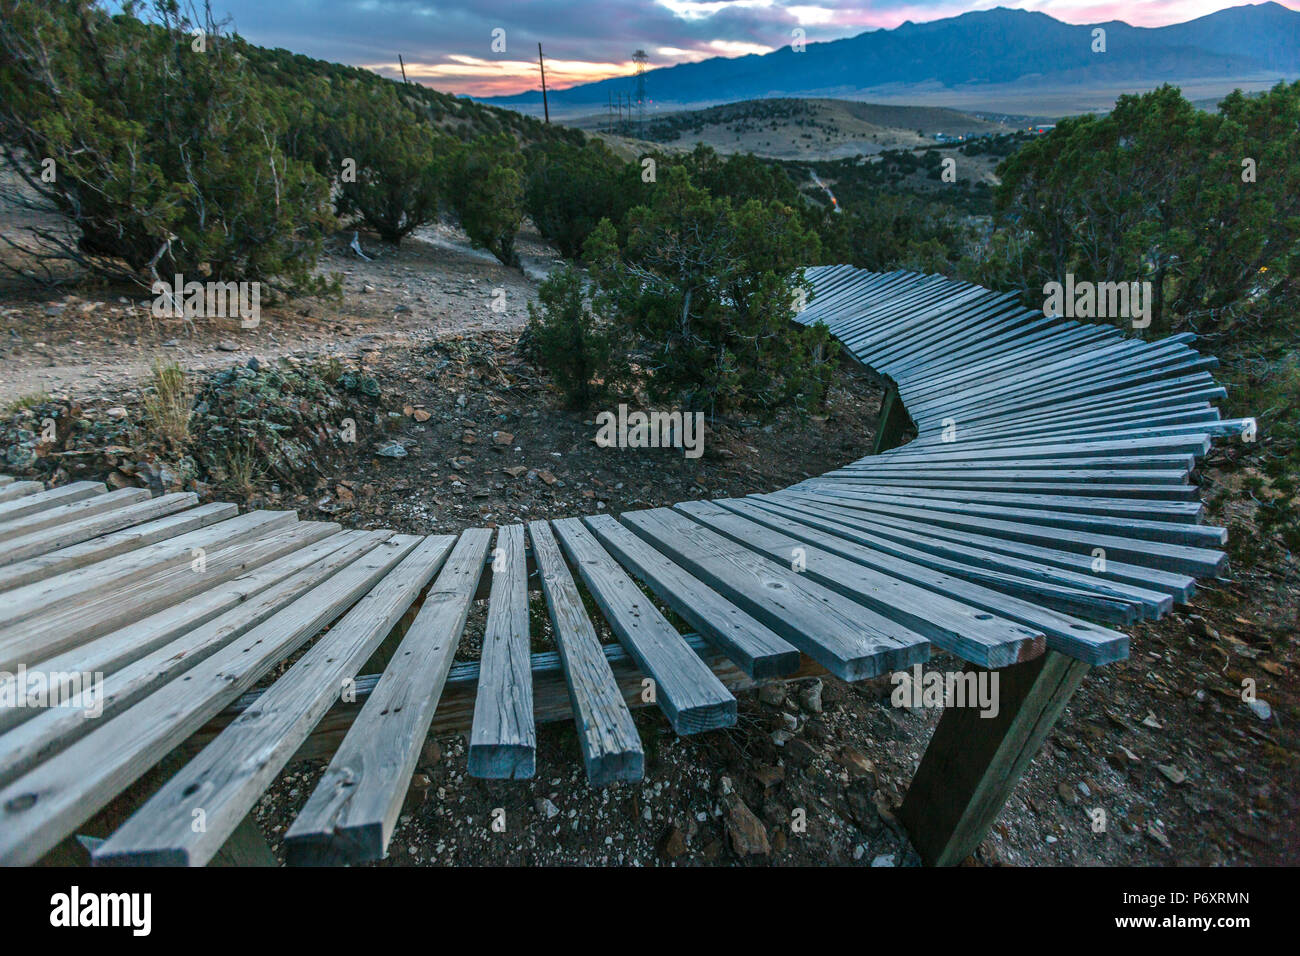 Curve of a wooden berm at sunset - Stock Image